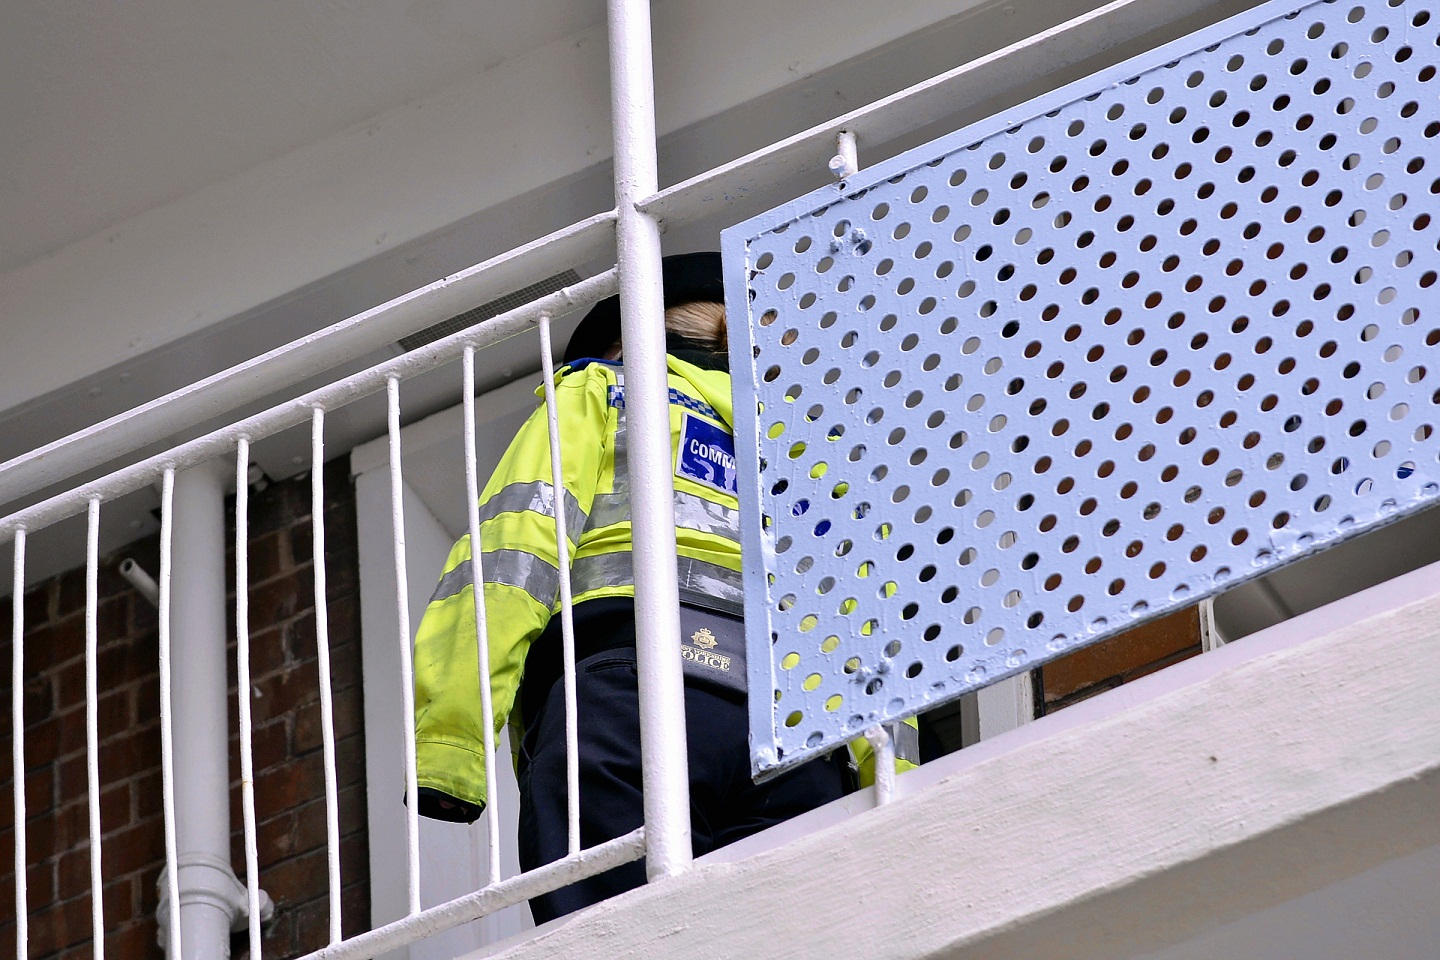 A PCSO stands guard at Gerard House, Fairhaven Green, Thorpe Edge, where the assault took place at the weekend